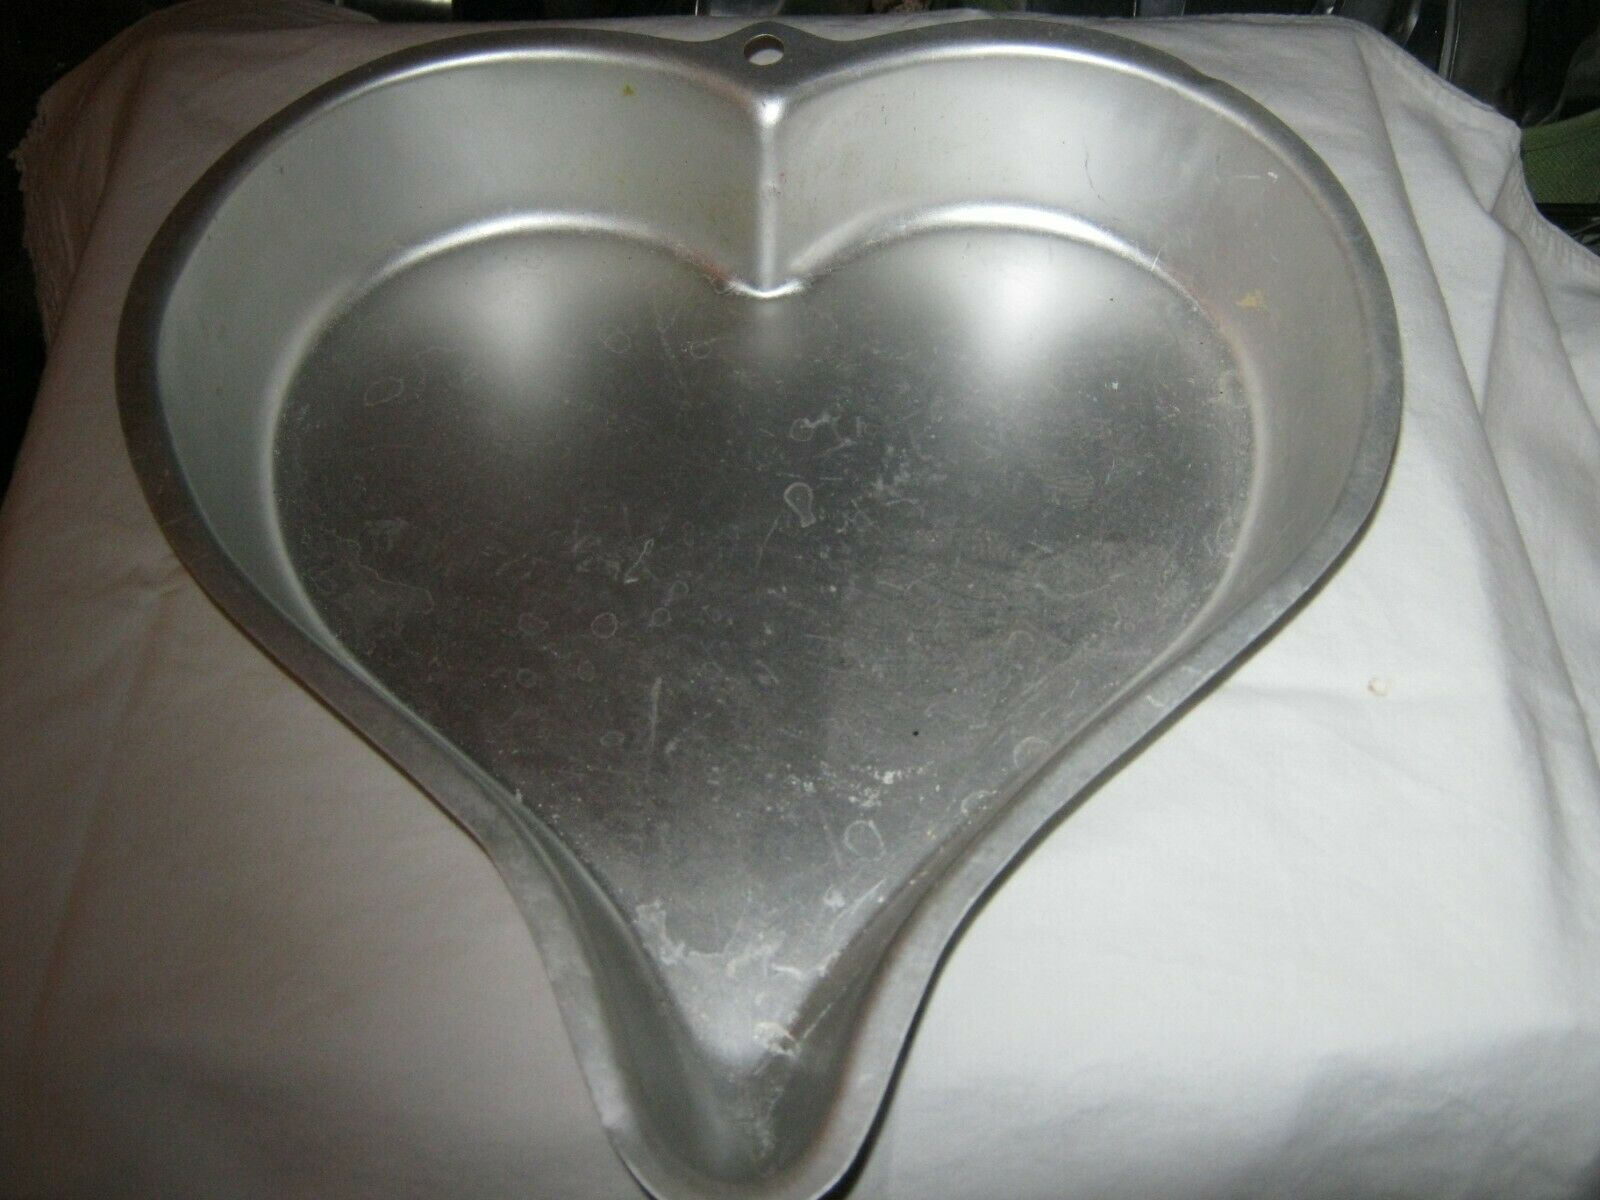 Primary image for Wilton Sweetheart Cake Pan (2105-1197)